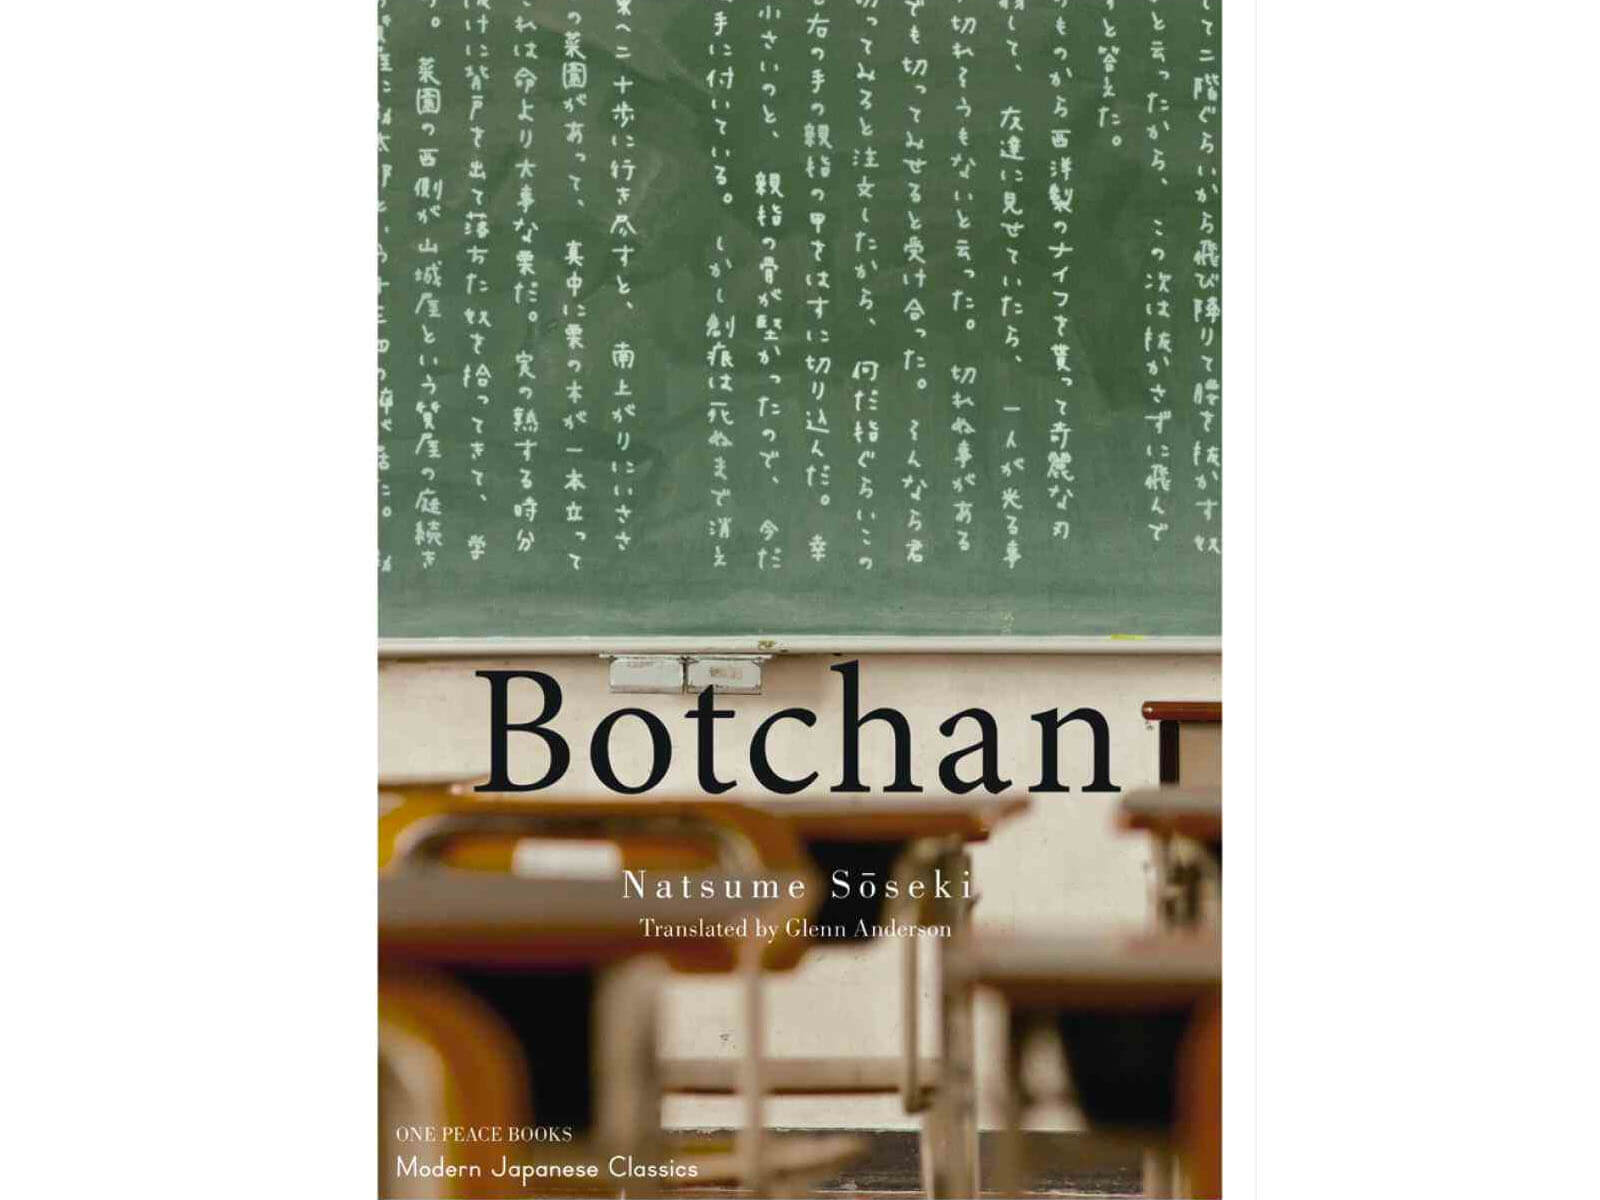 One Peace Books' Edition of Botchan